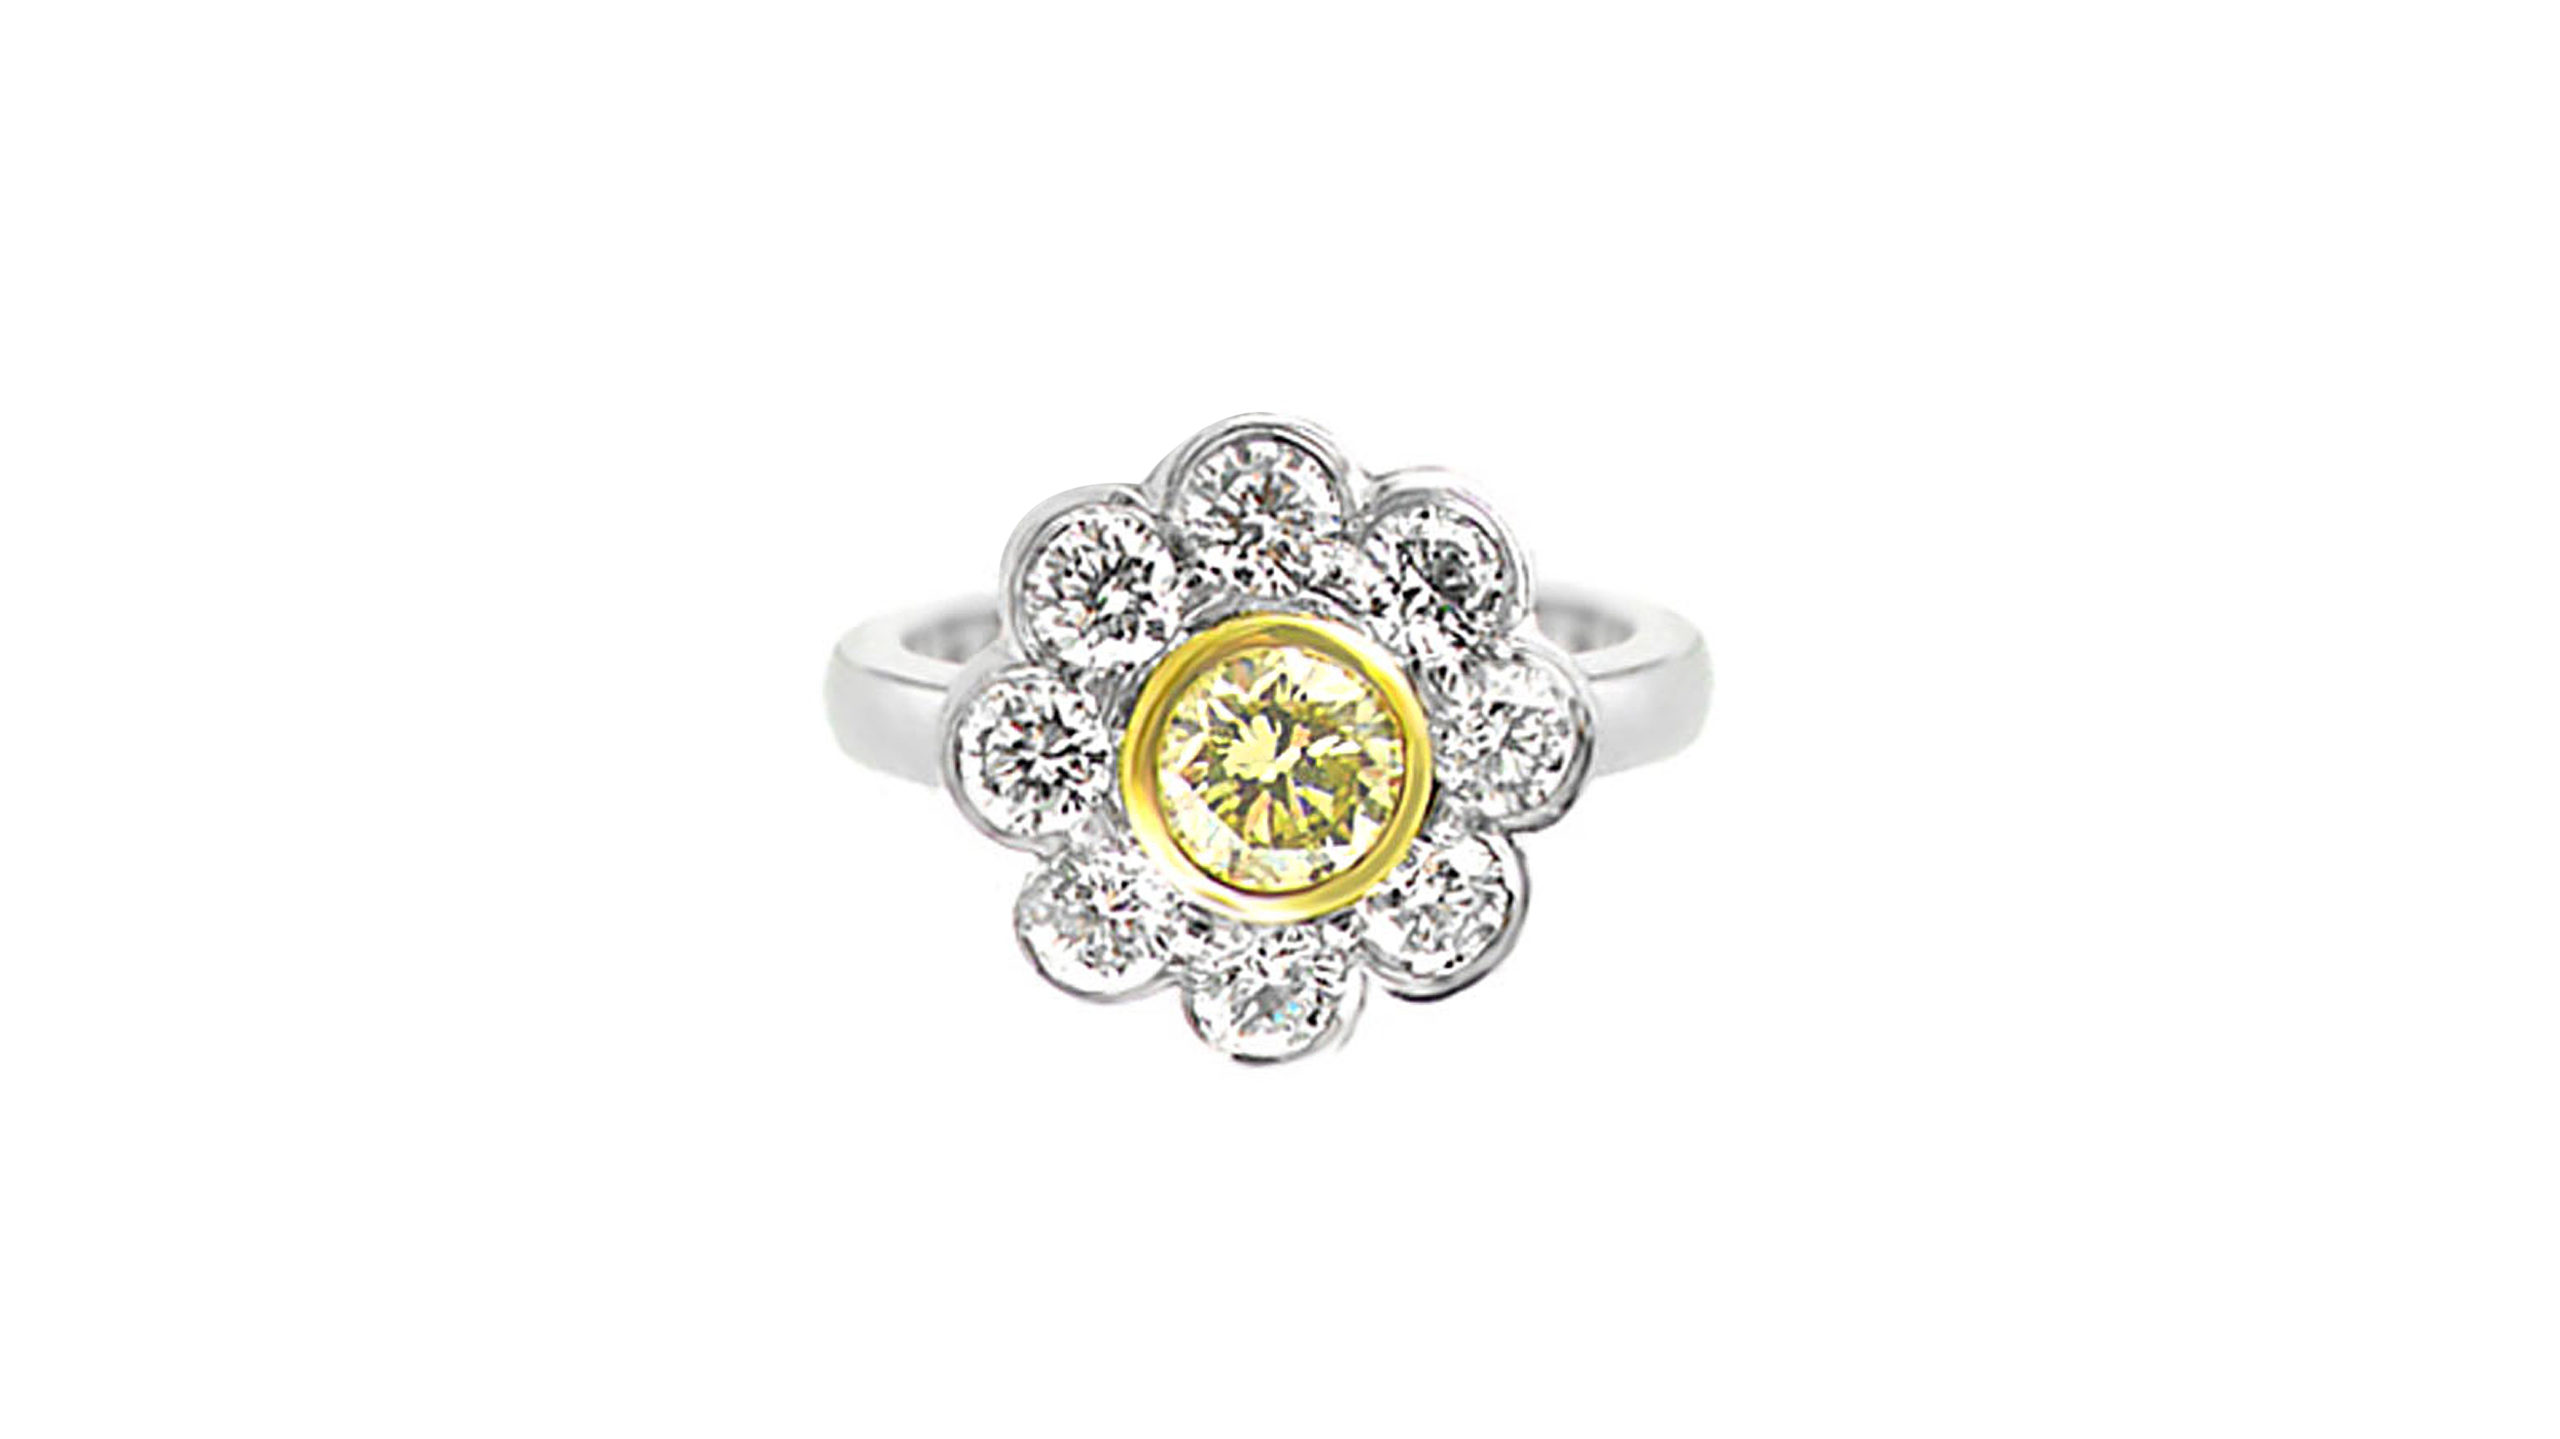 yellow & white diamond daisy ring | Handcrafted in 18 carat white and yellow gold